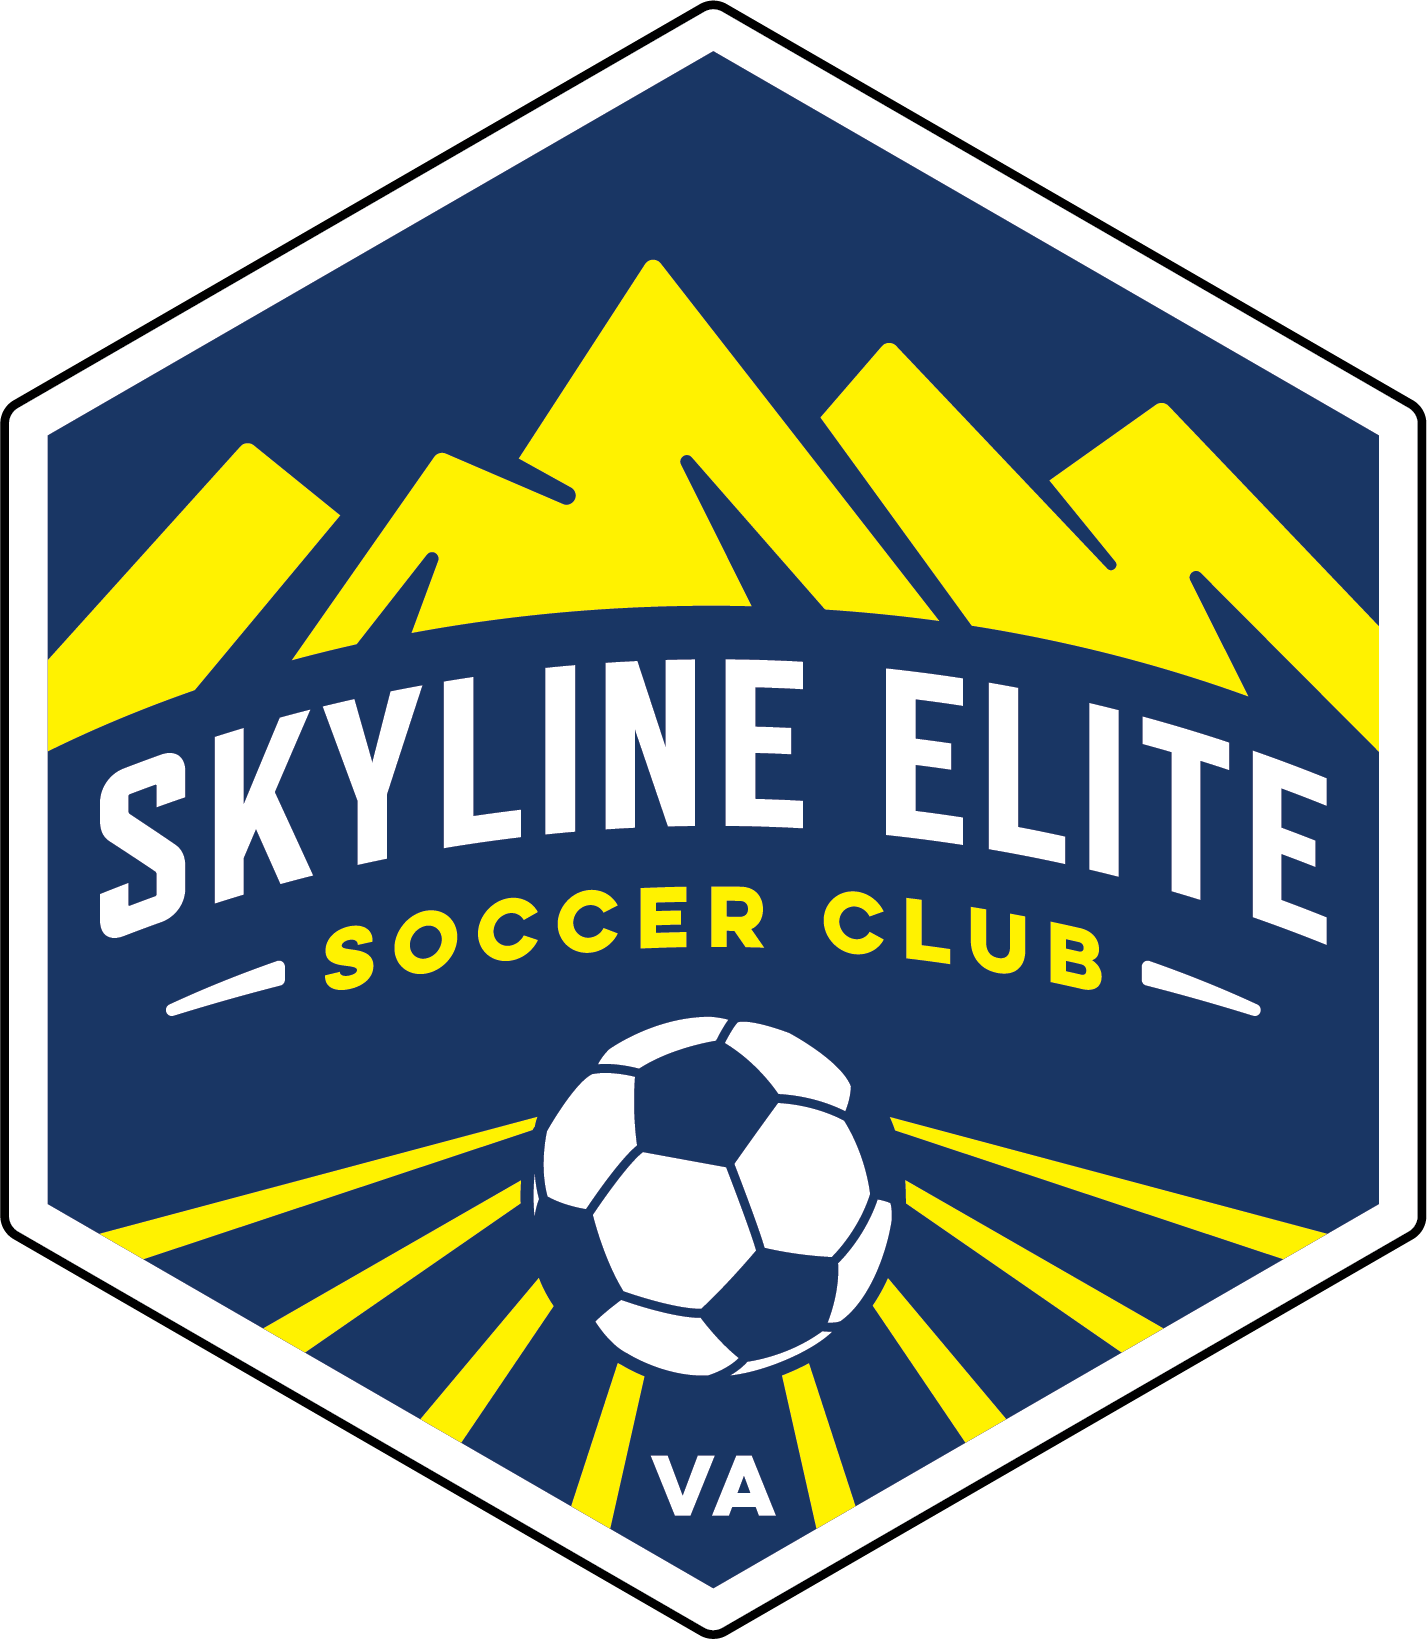 Home - Skyline Elite Soccer Club